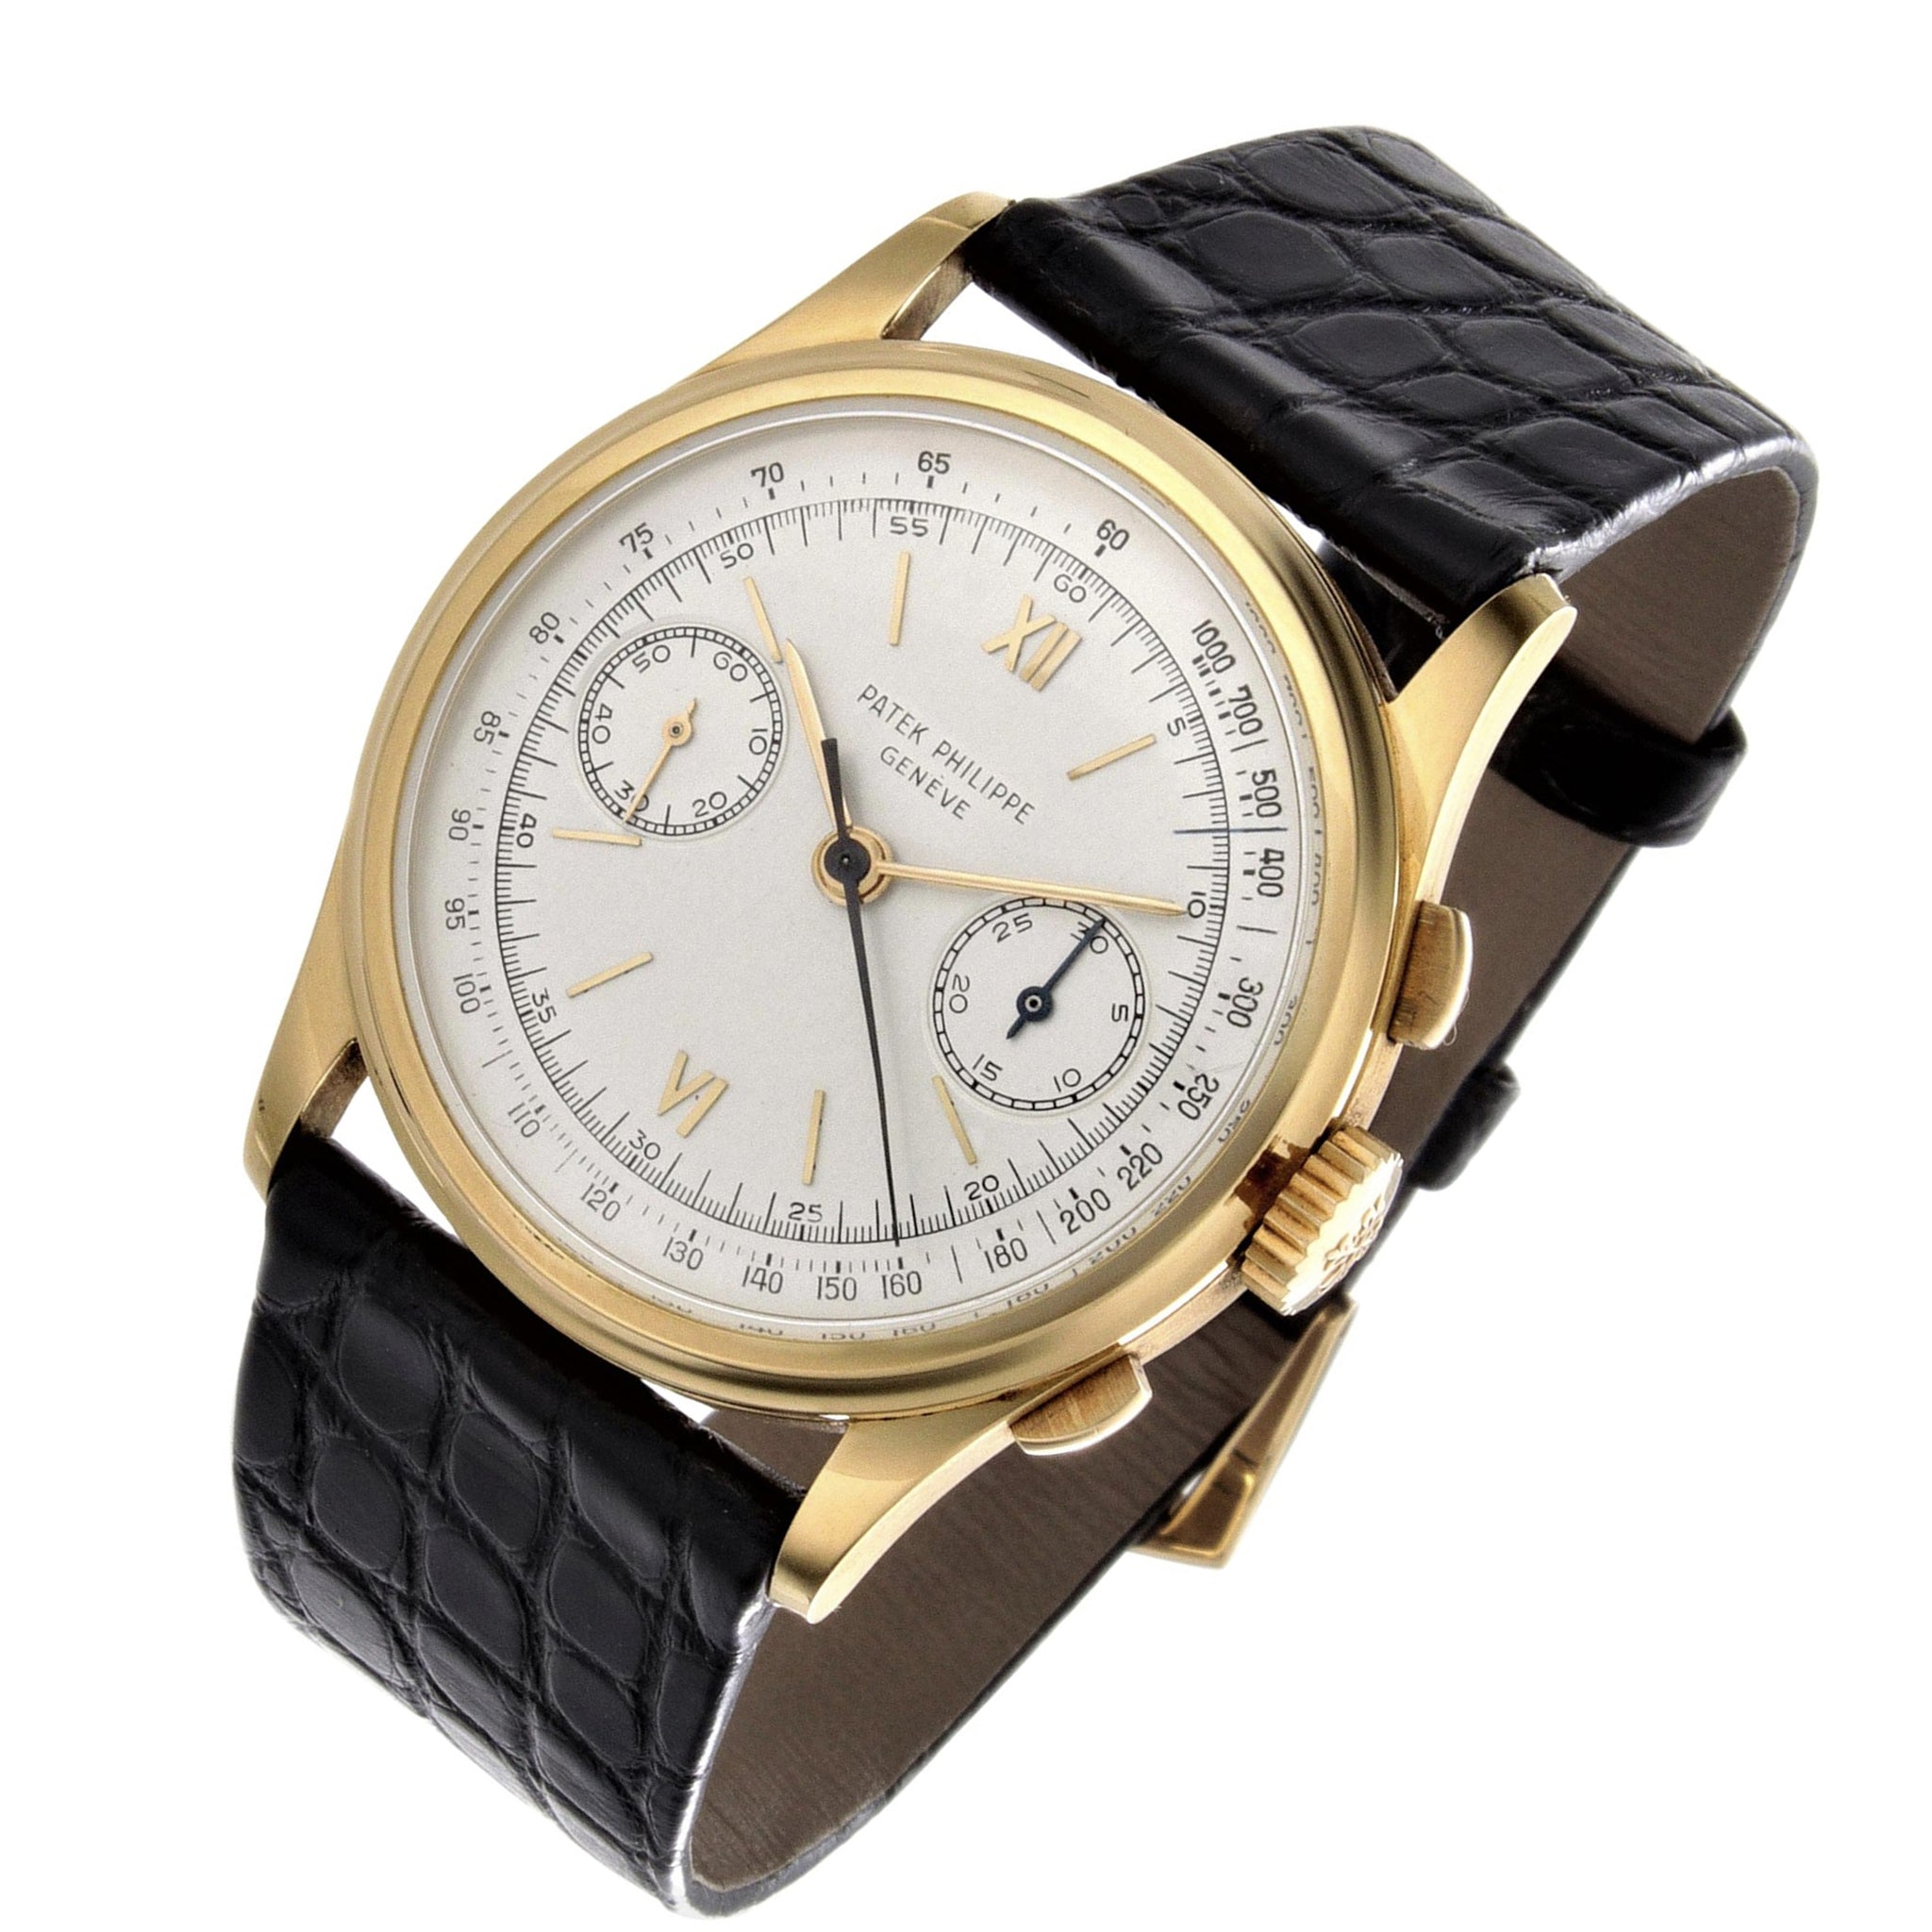 Patek Philippe 530J Jumbo Chronograph Watch Circa 1946